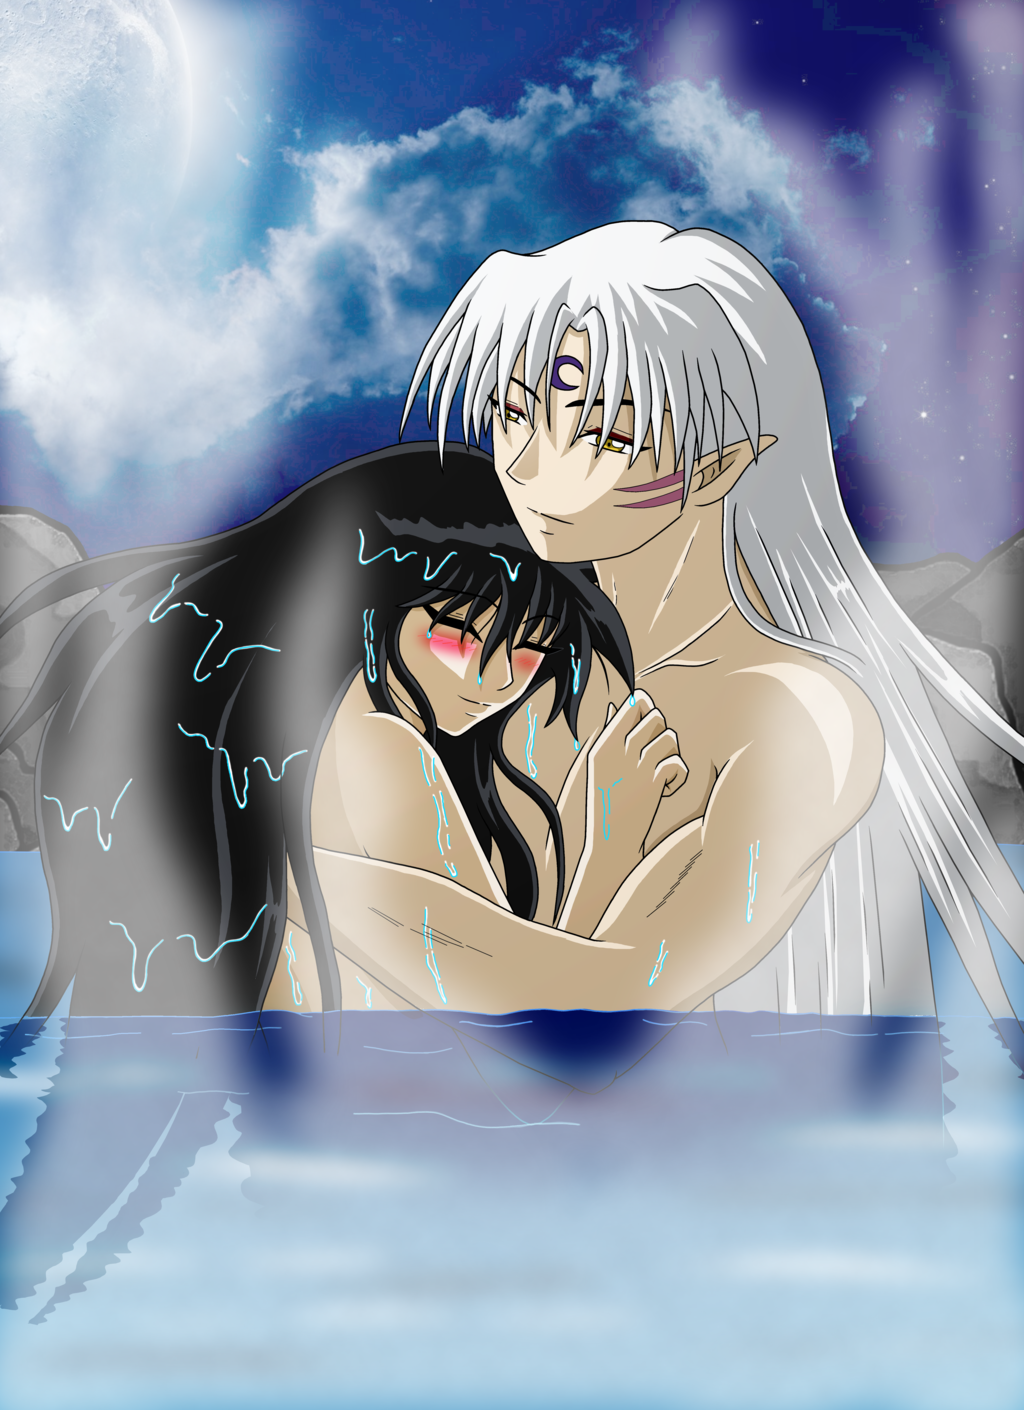 Hentai Inuyasha With Inuyasha Has Just Creampied Kagome And Wants Everyone To See That